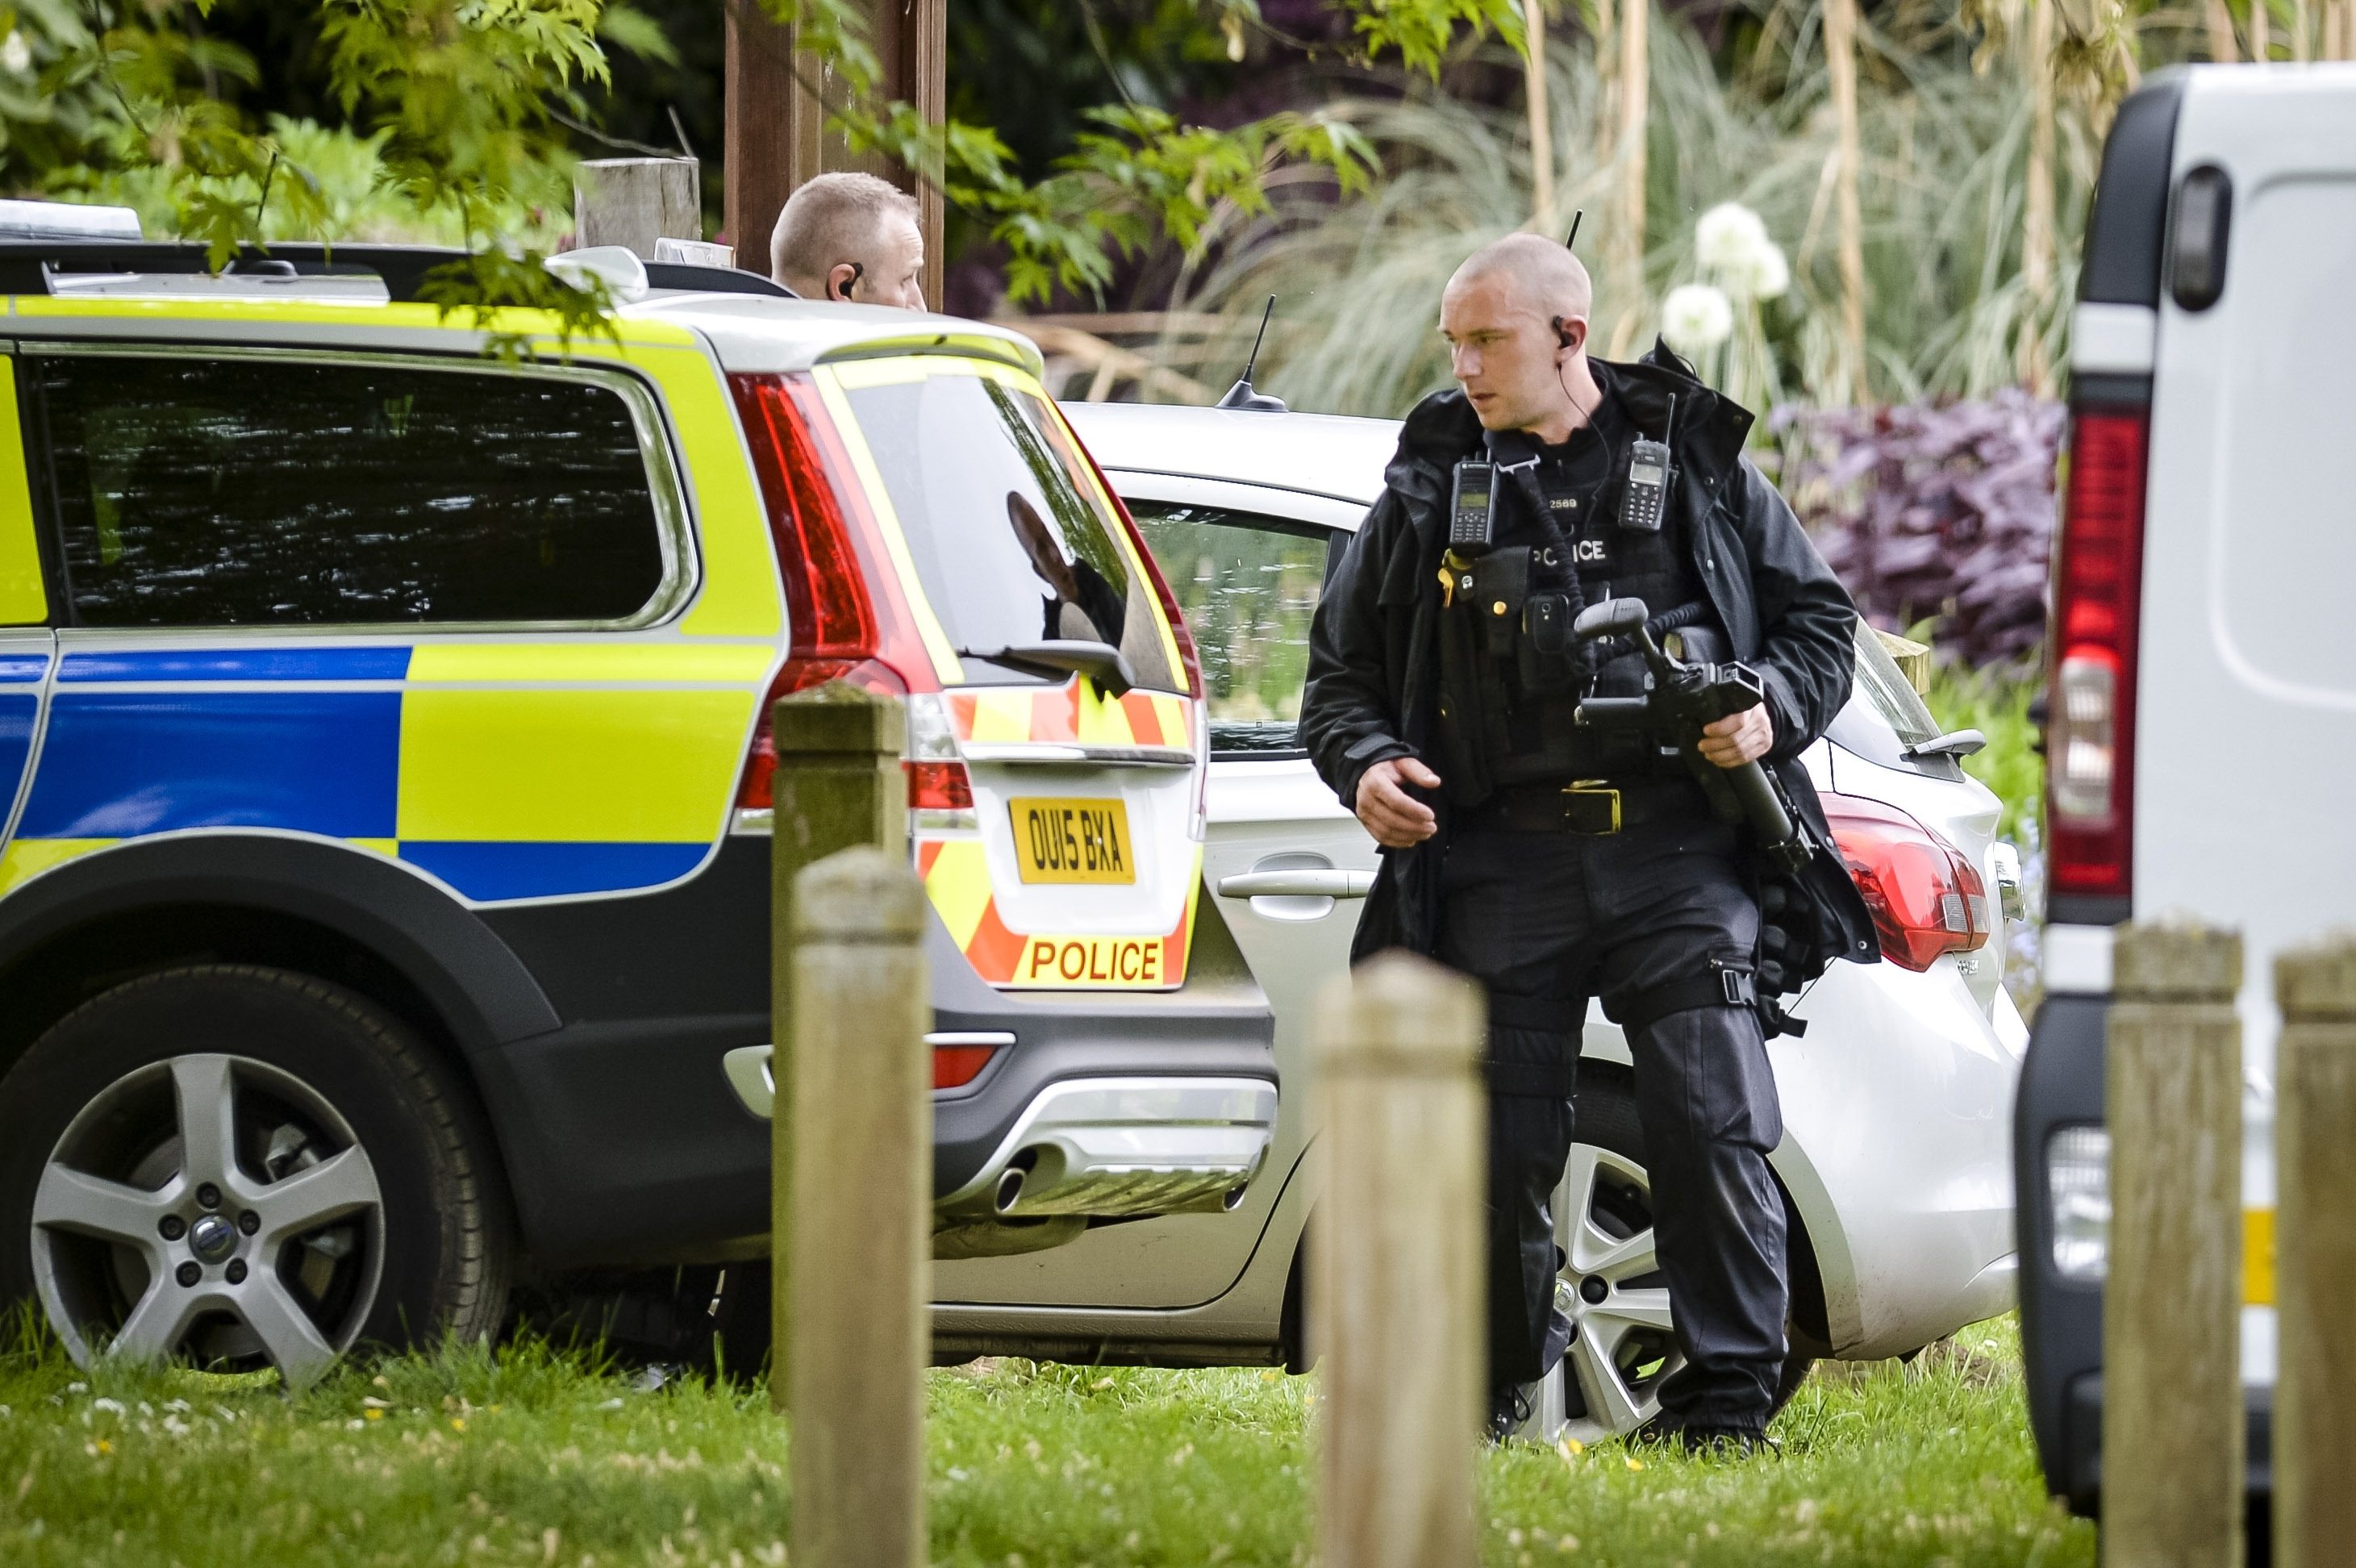 An armed police officer inside the Oxford University Parks, searching for Jed Allen